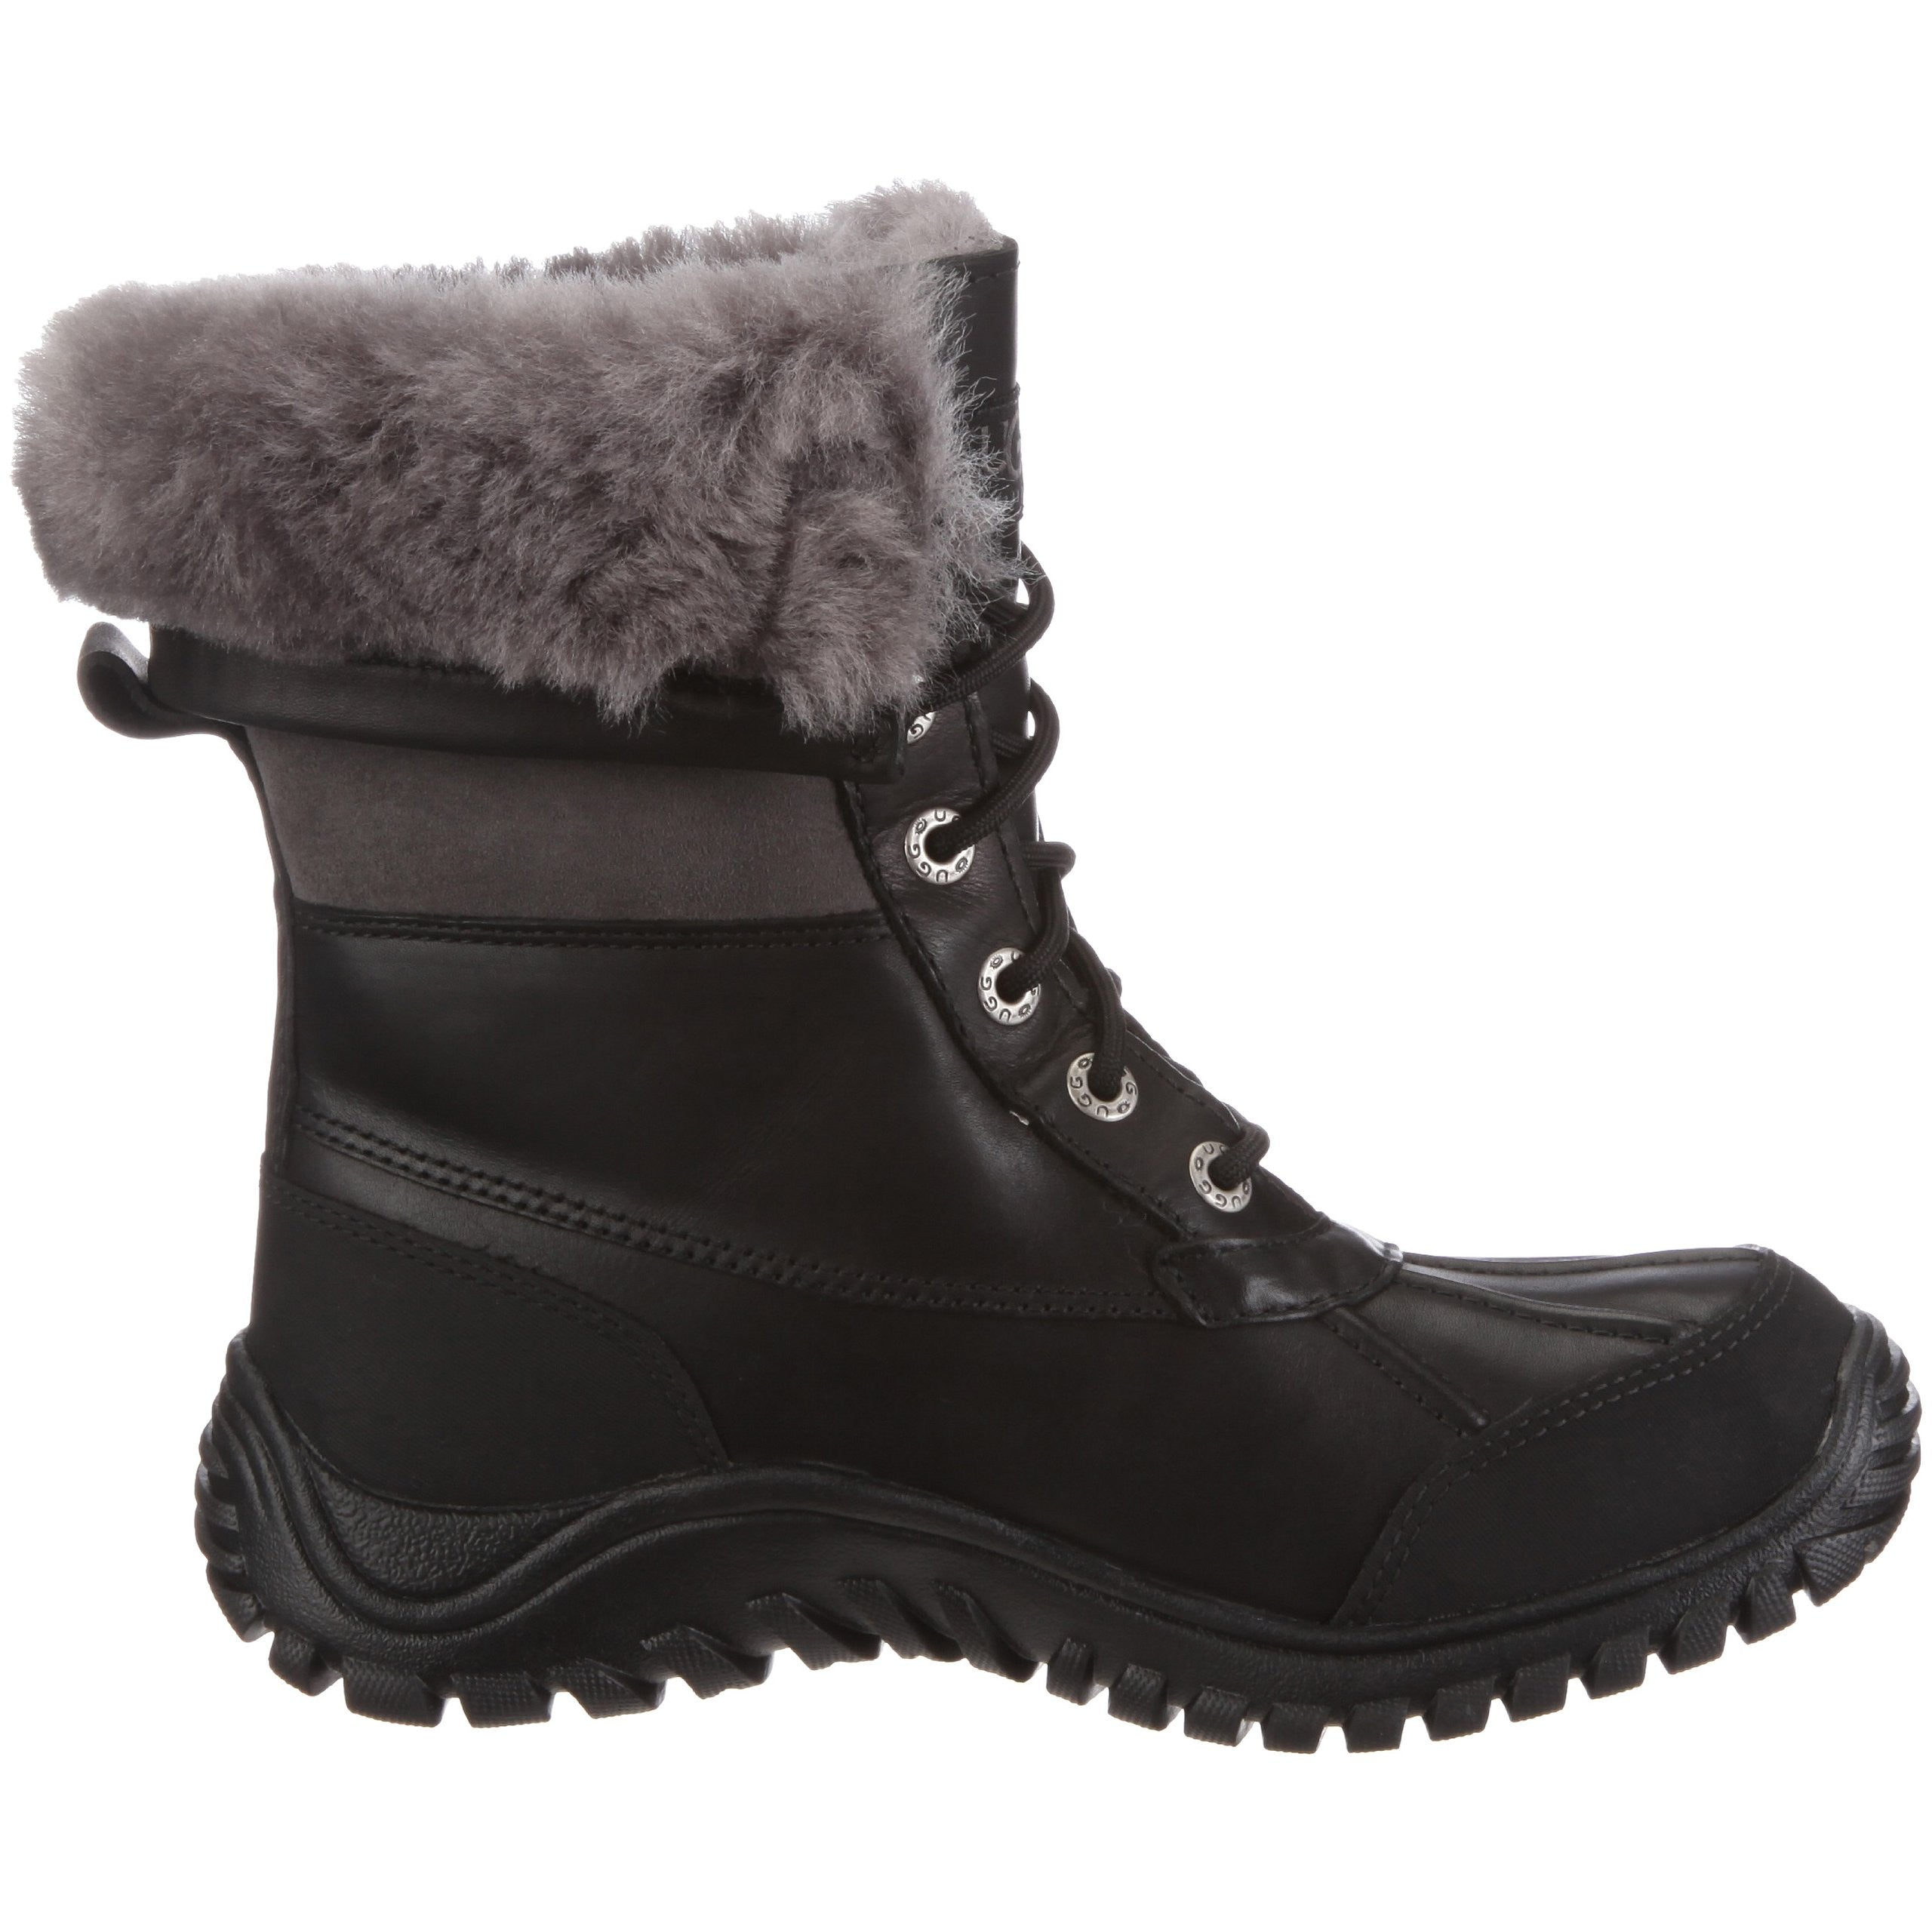 Shop Kids' UGG size 5G Boots at a discounted price at Poshmark. Description: New in the Box Uggs UNLINED Perfect for winter No pets No smoke. Sold by shay_kristine Fast delivery, full service customer support.